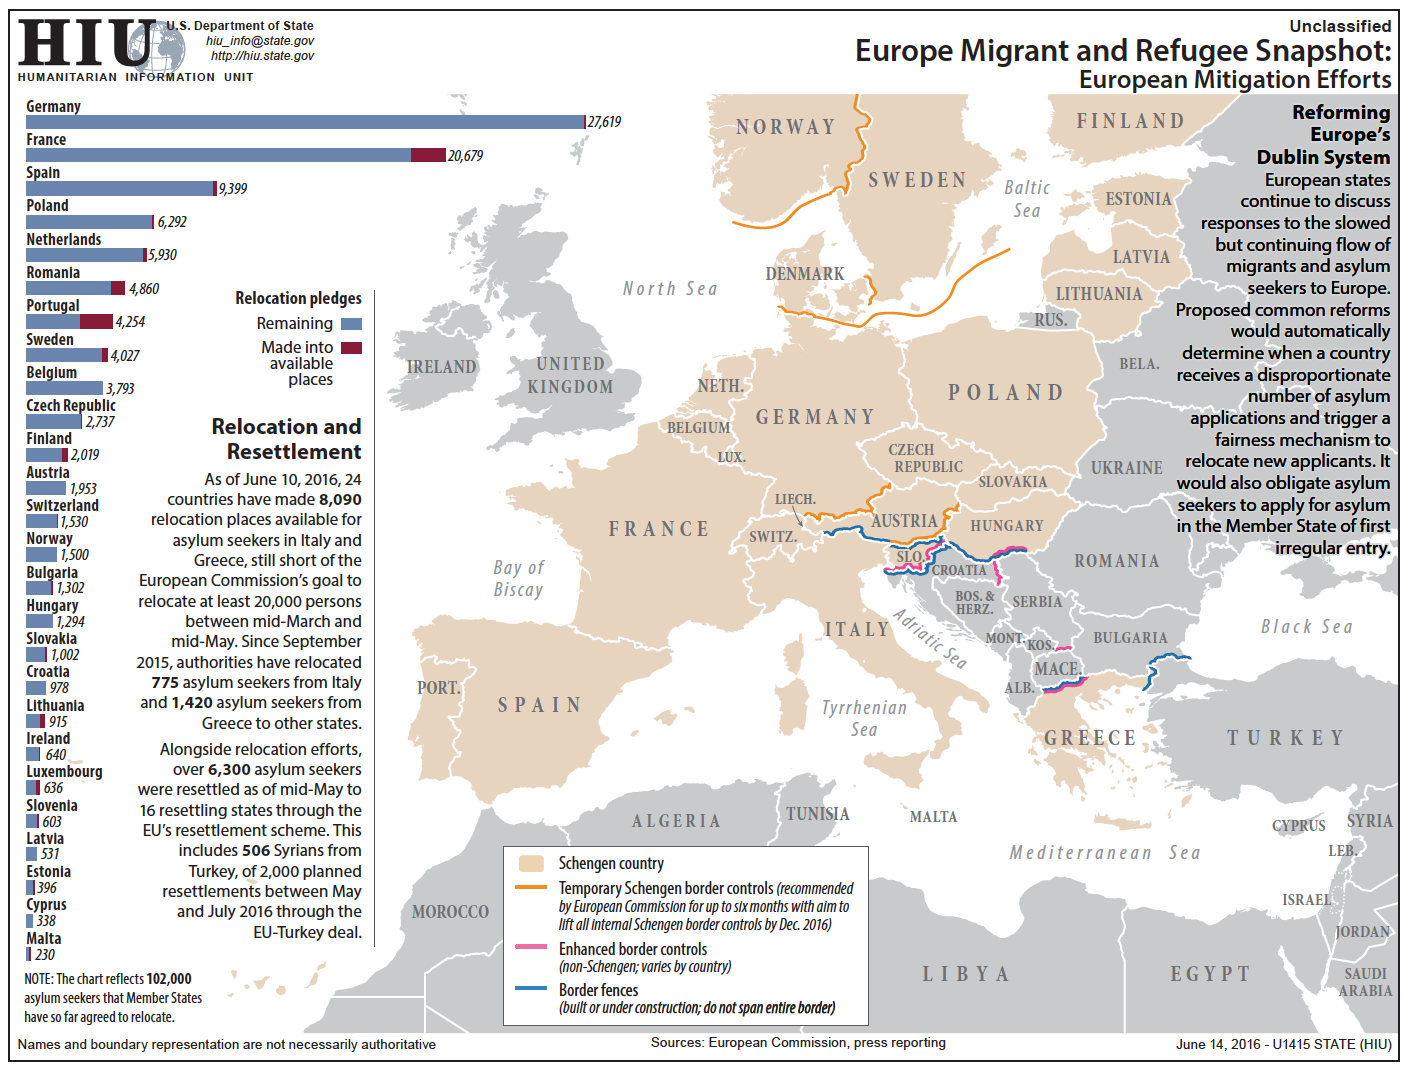 migration in eu member states essay Contrary to popular belief, migration from muslim countries is one reason why europe is becoming more secular, not less.